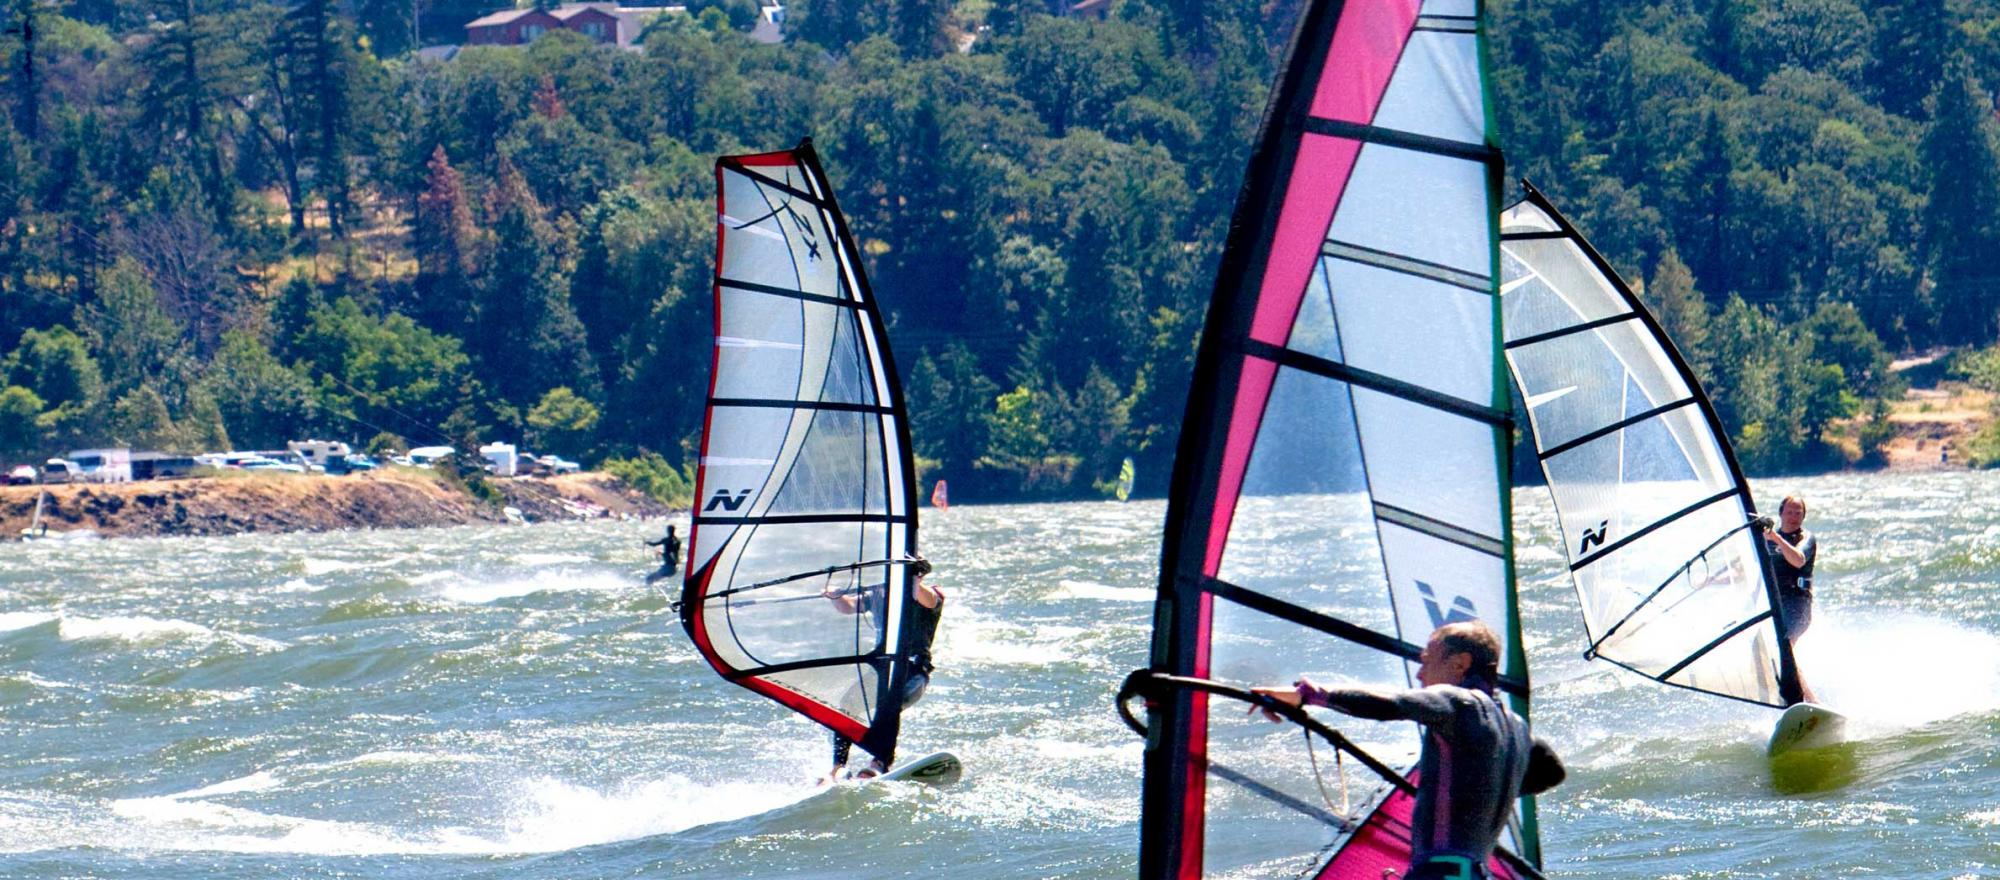 Windsurfers on the Columbia River Gorge.